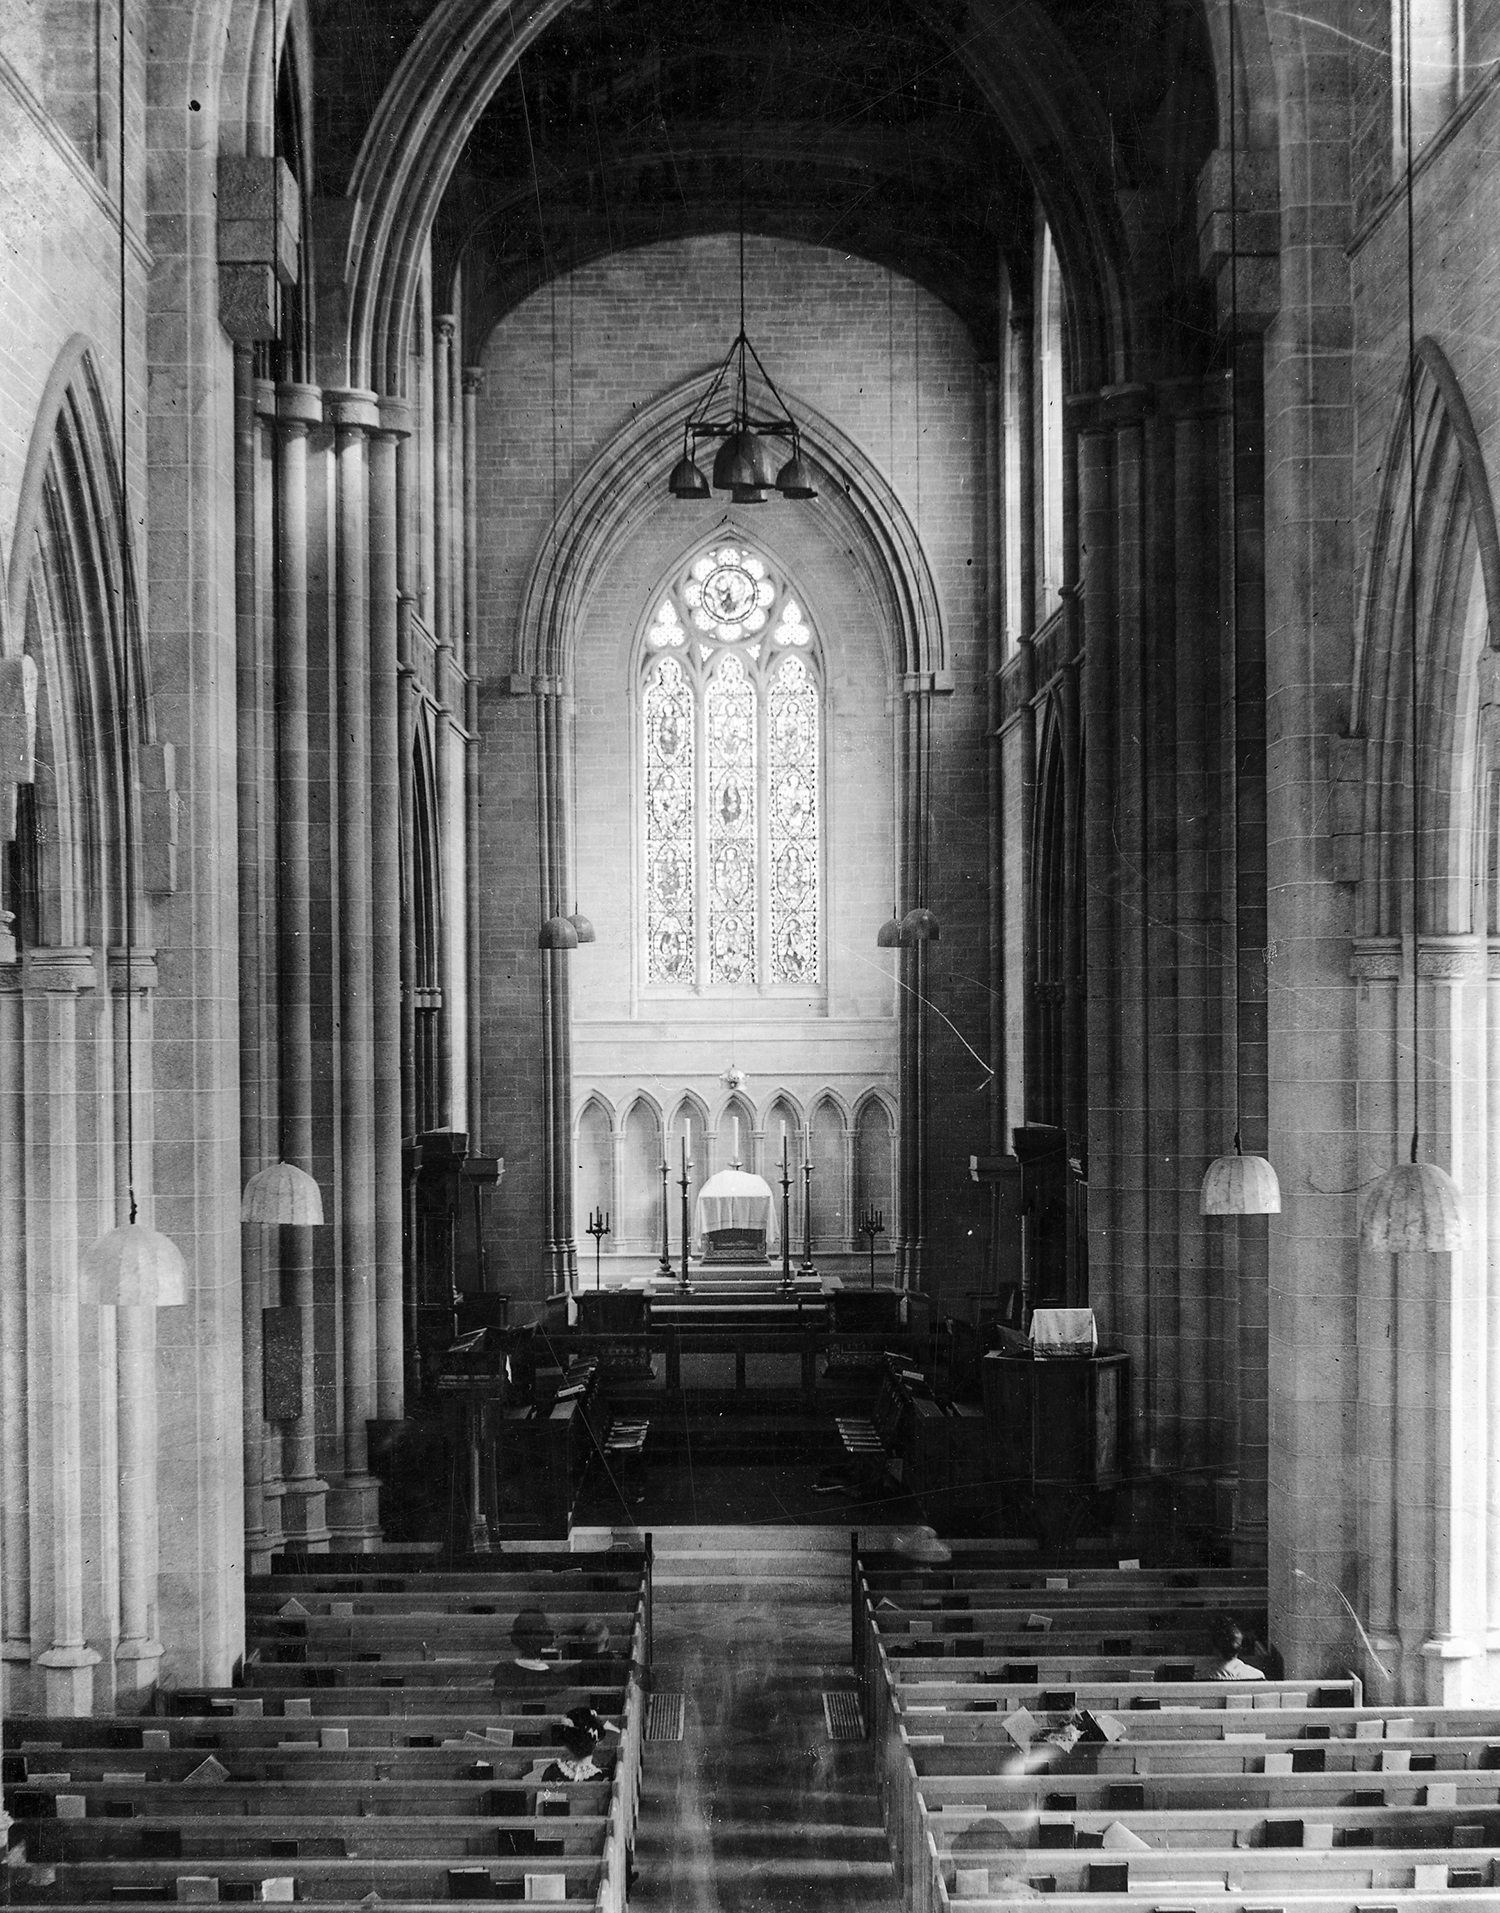 Figure 9: The interior of Bryn Athyn Cathedral on October 5, 1919. (In the early days of photography pictures were often taken using long exposures.)